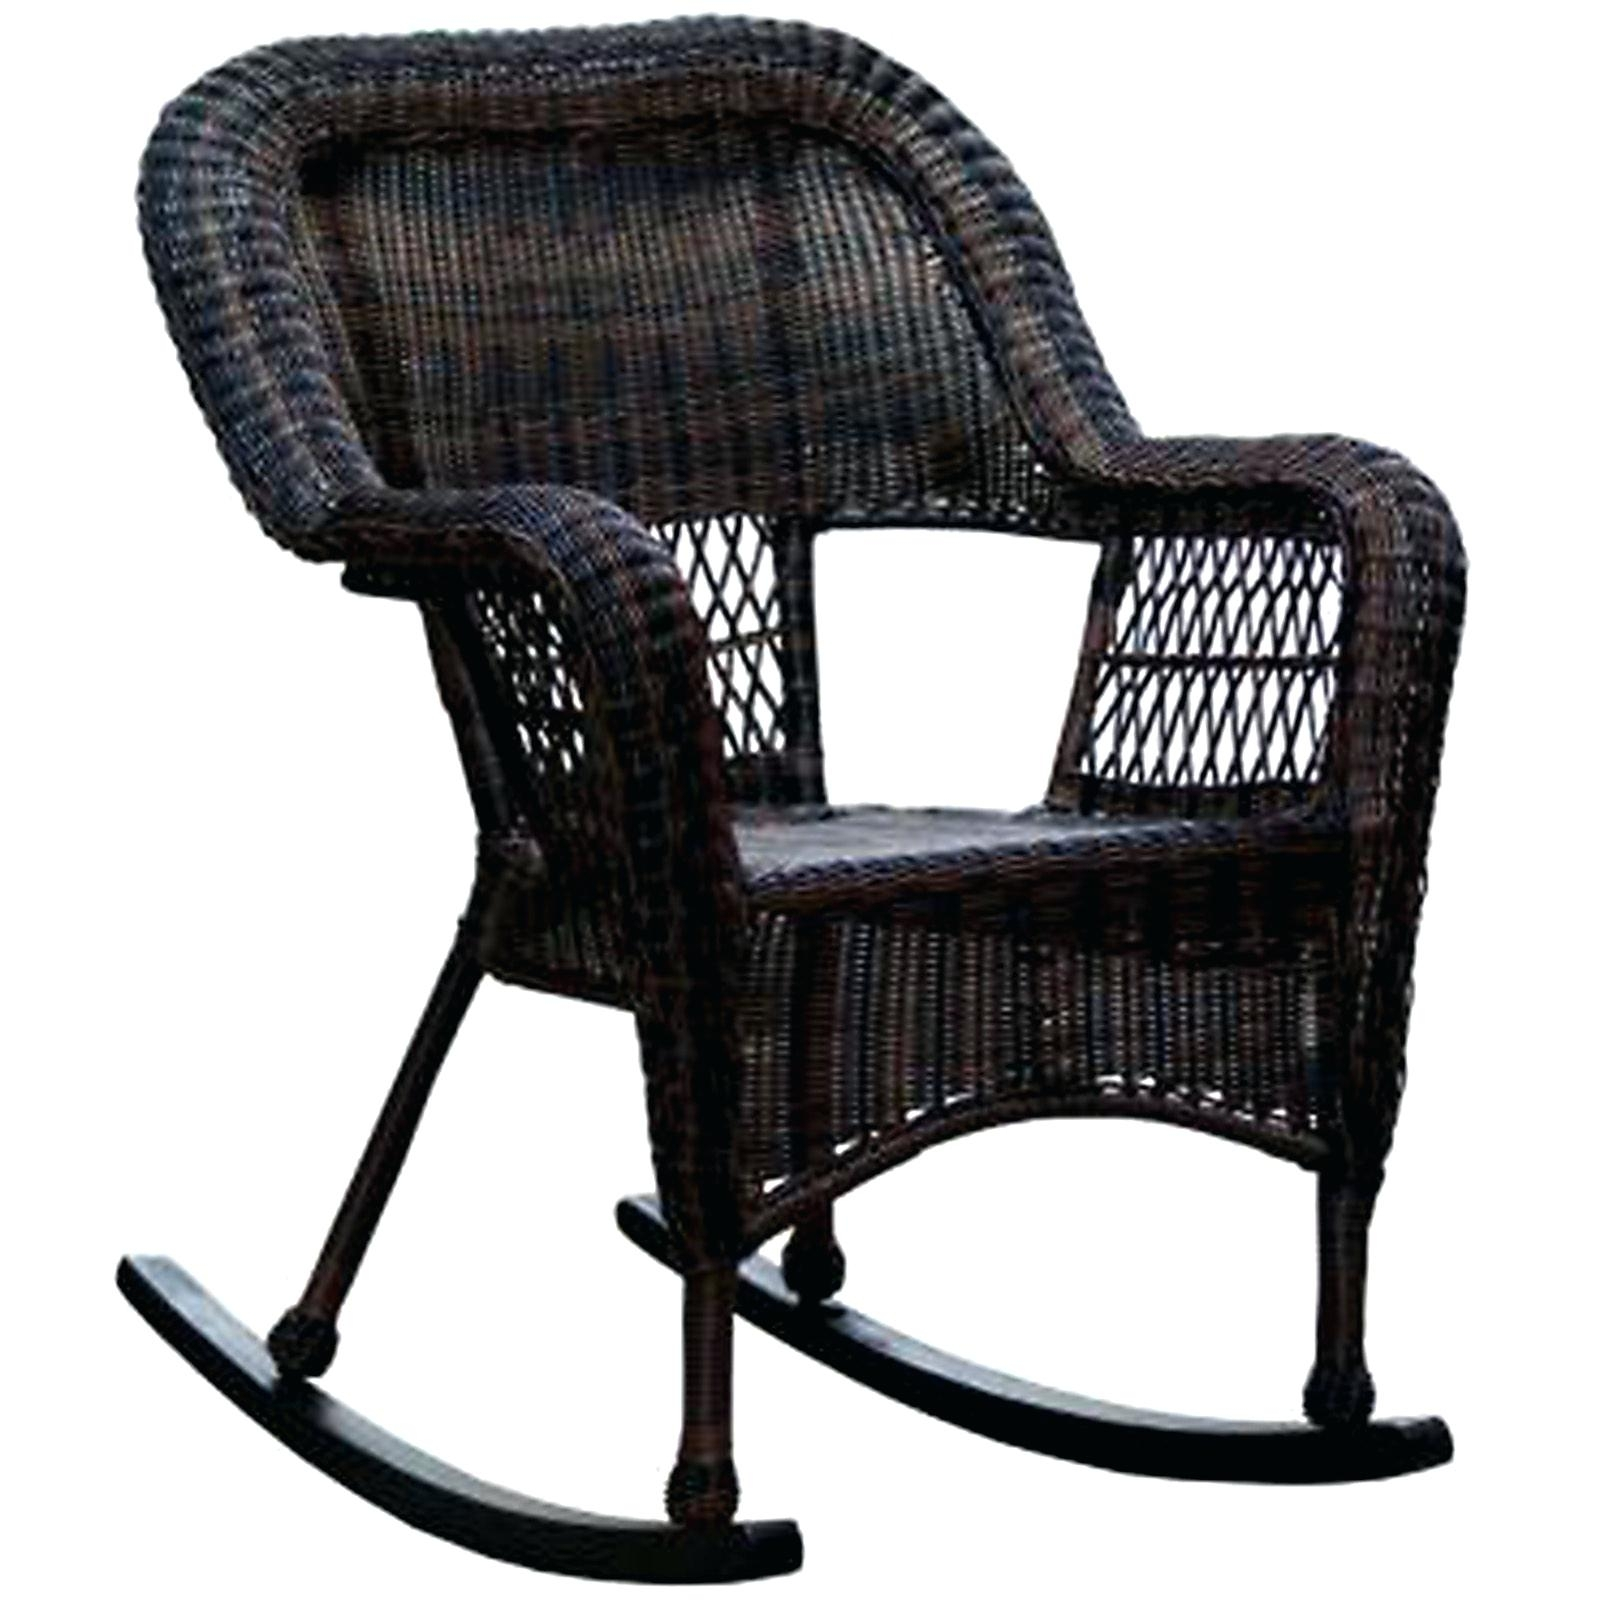 Patio Rocking Chairs Patio Rocking Chairs Metal – Chair Design Ideas Within Outdoor Patio Metal Rocking Chairs (#13 of 15)